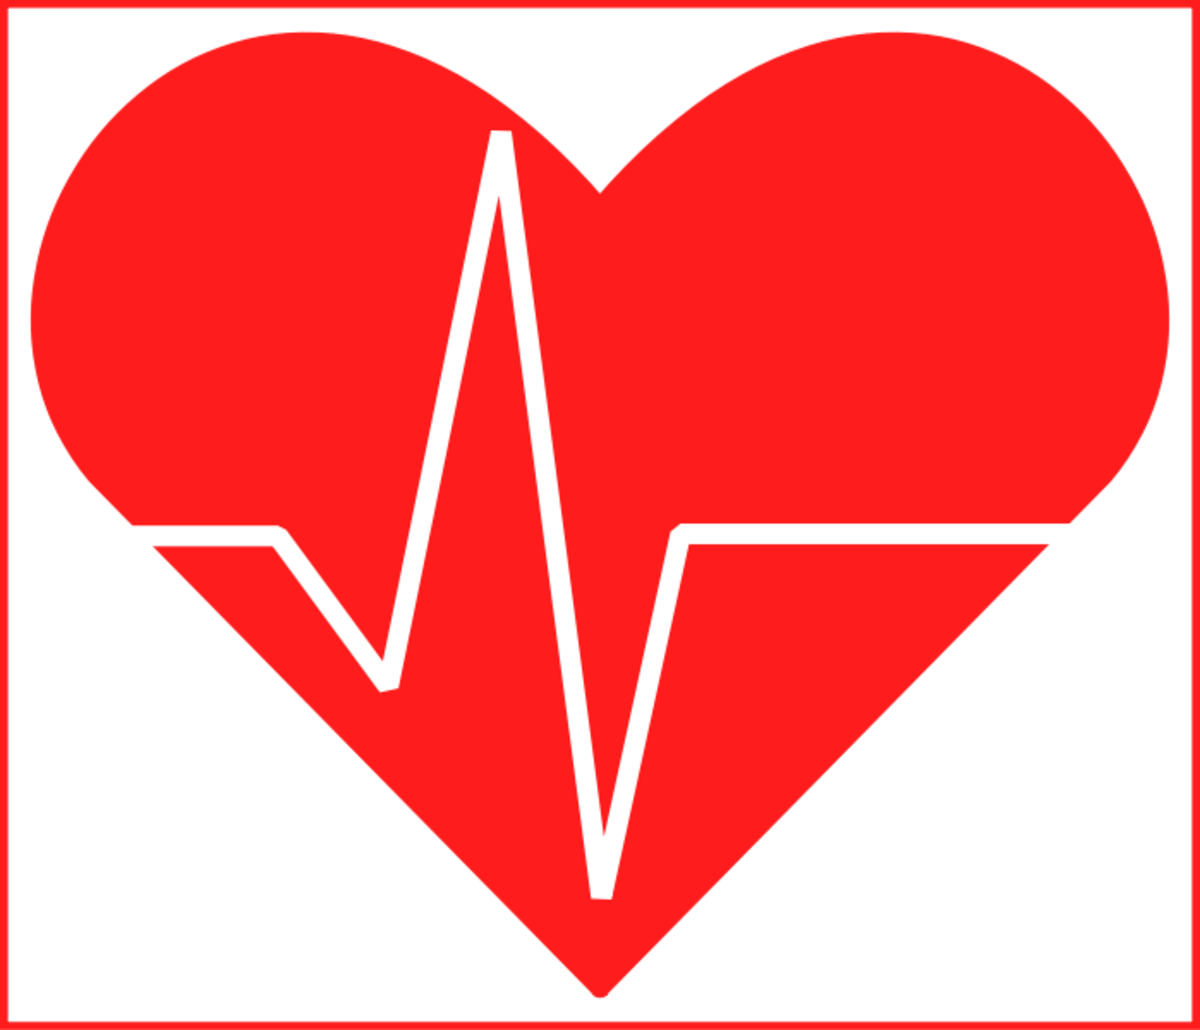 My Cardiac Health Scare: A Silent Heart Attack?